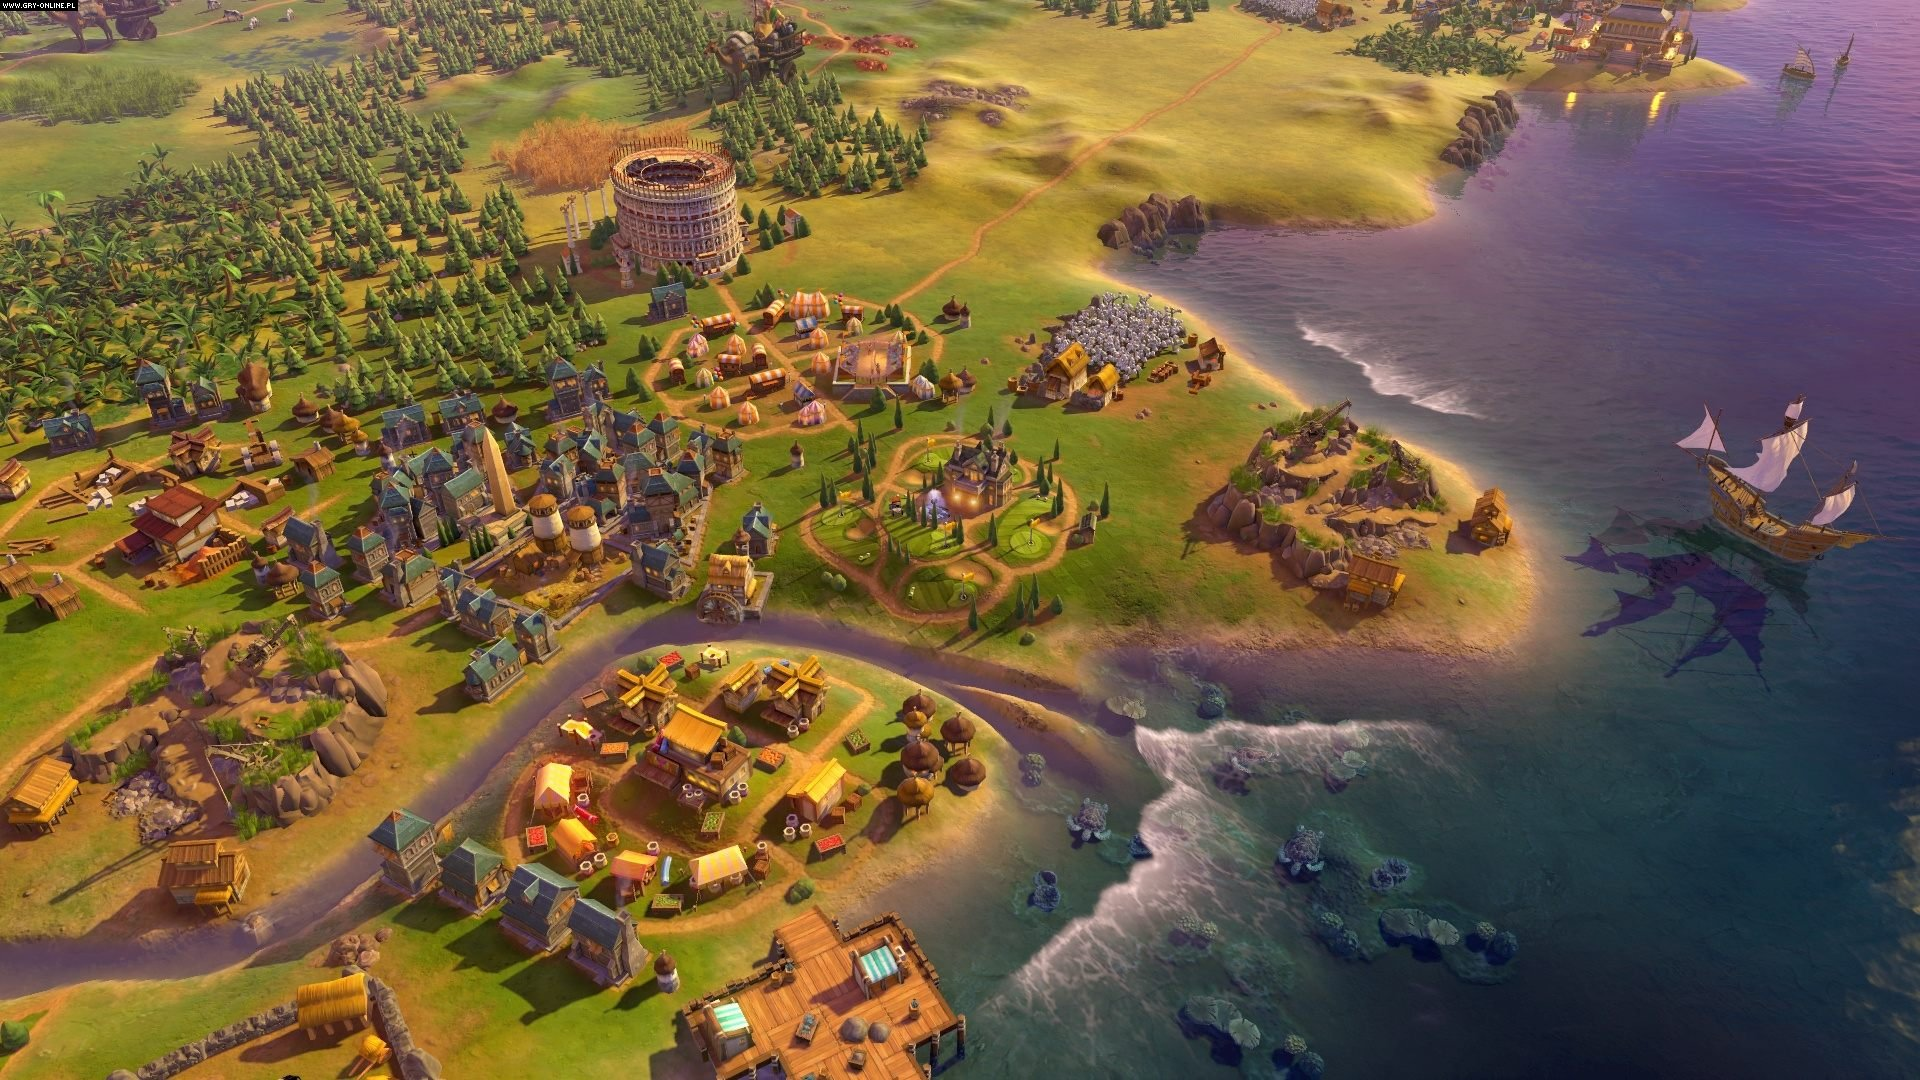 Sid Meier's Civilization VI: Rise and Fall PC Gry Screen 5/19, Firaxis Games, 2K Games